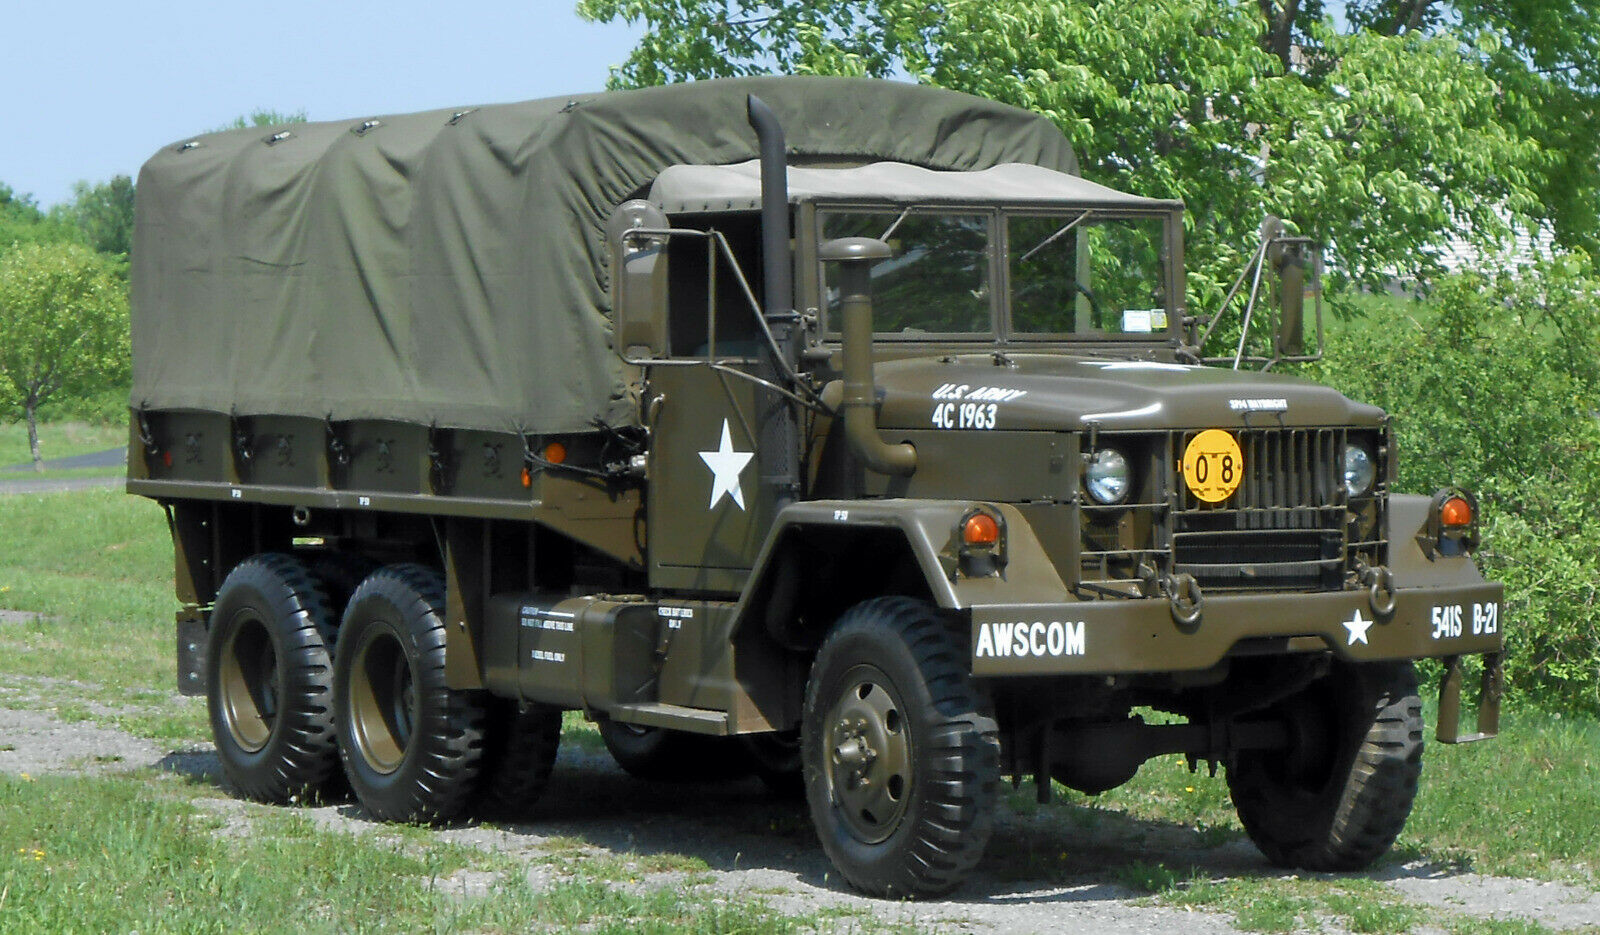 clean 1971 AM General M35a2, Deuce and a Half military